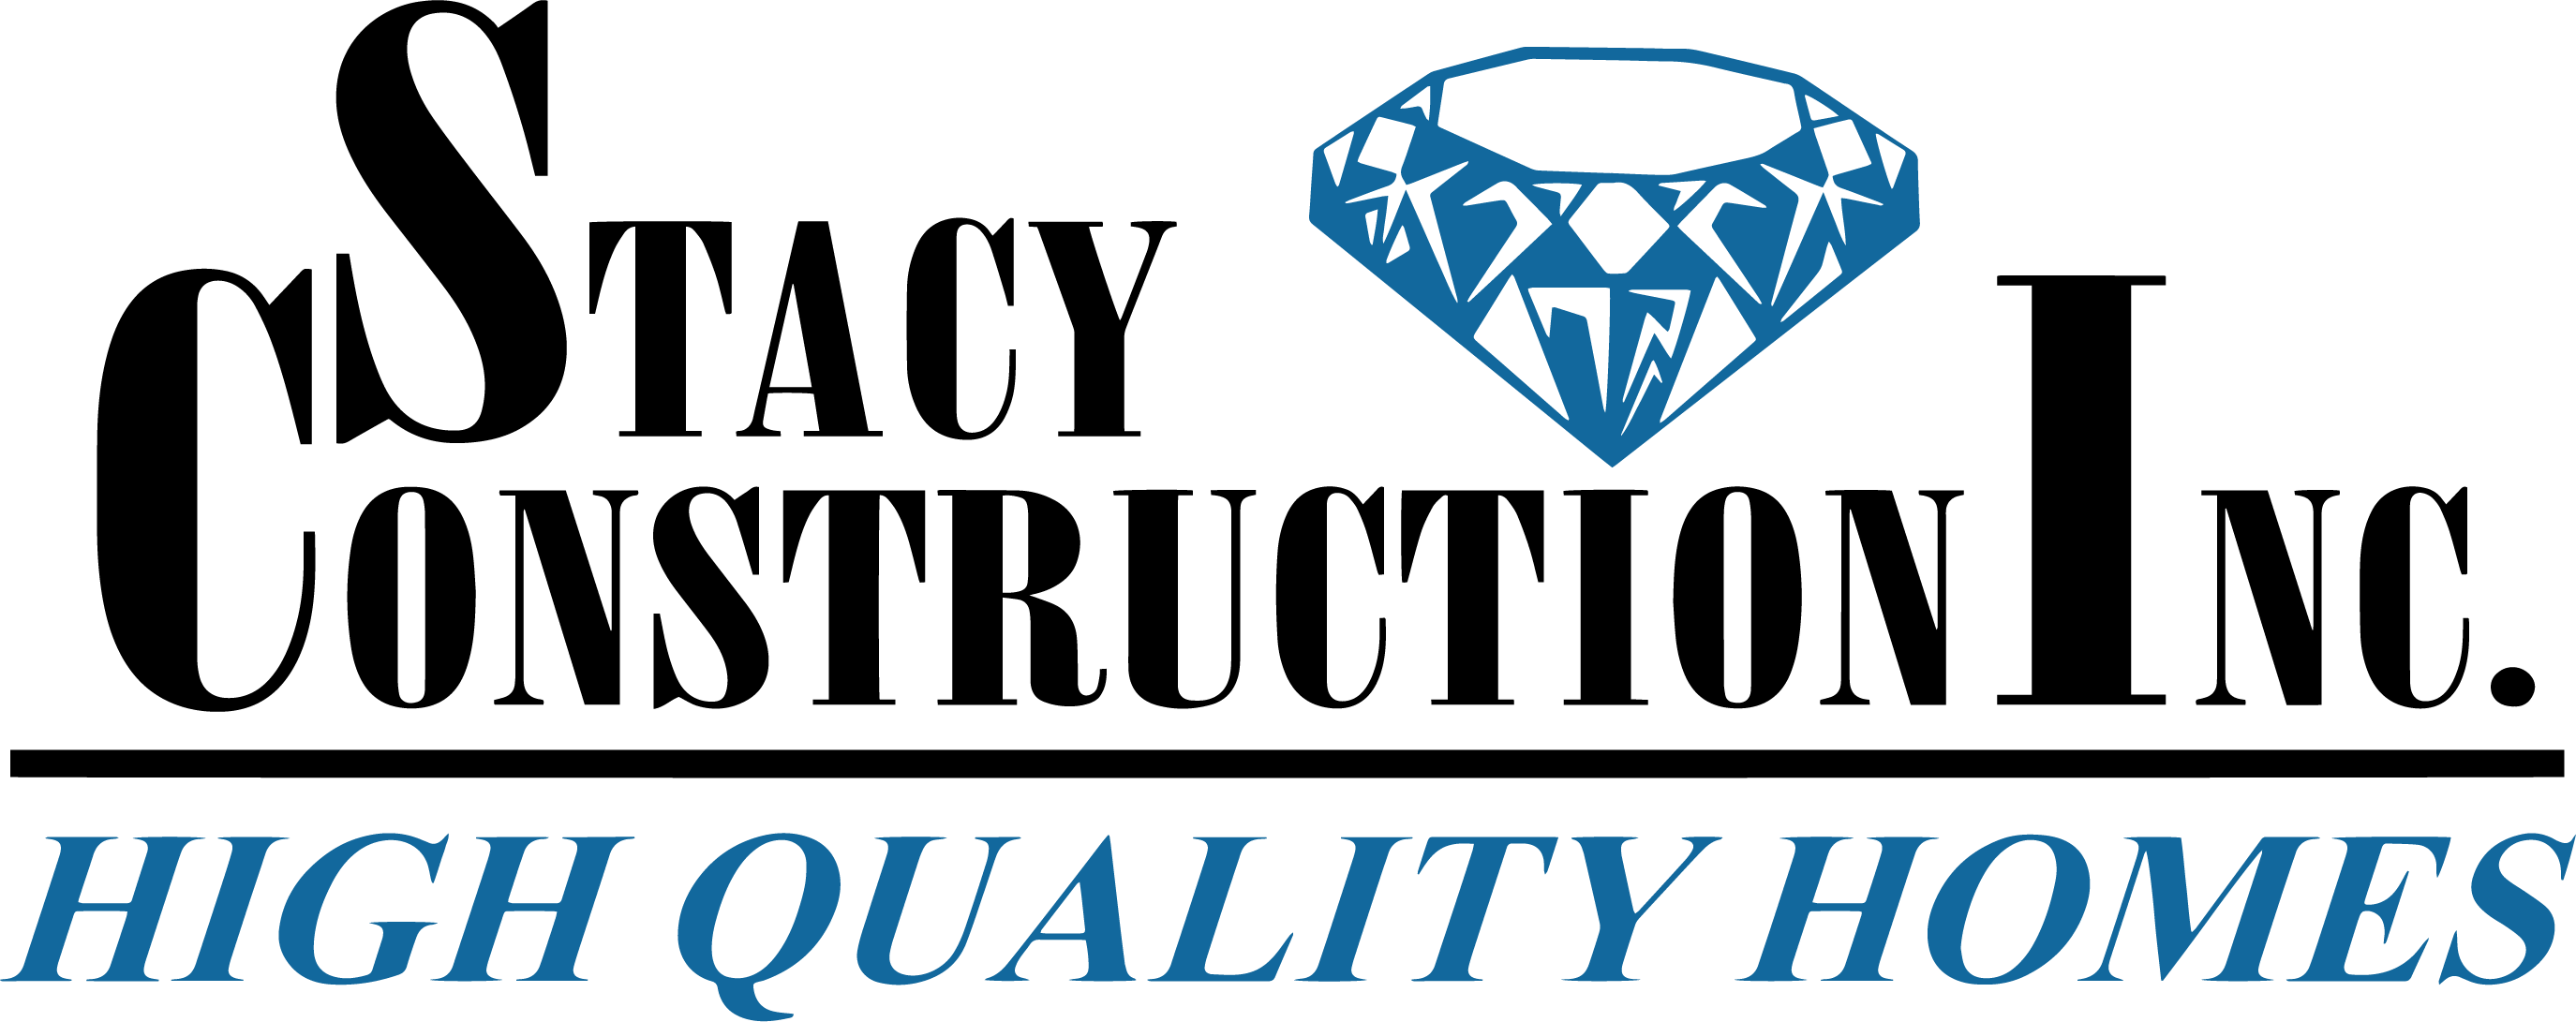 Stacy Construction Inc. | High Quality Homes | Logo